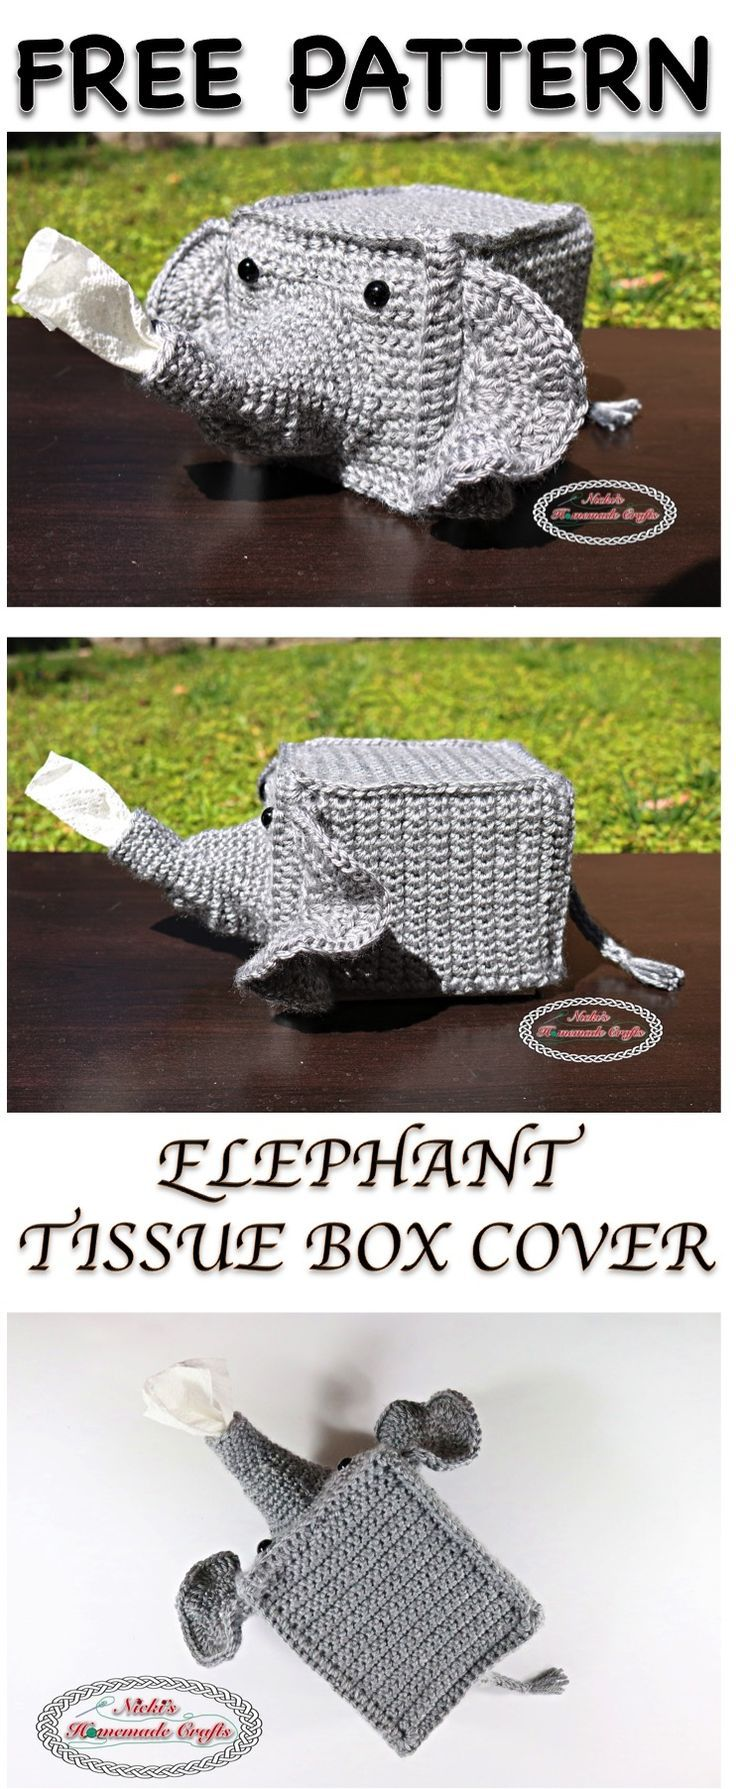 Elephant Tissue Box Cover Free Crochet Pattern | Fun craft ideas ...